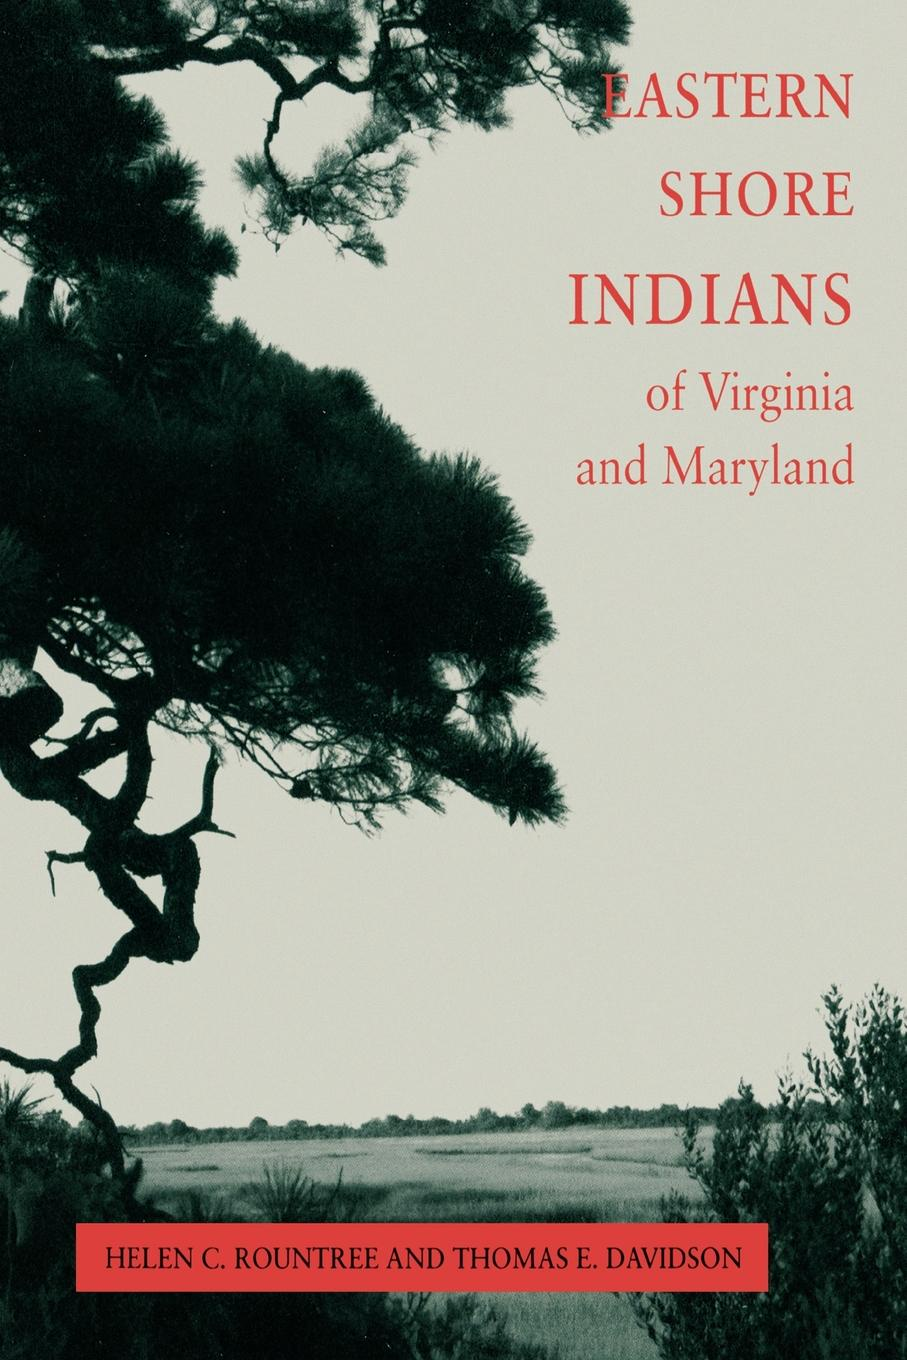 Helen C. Rountree, Thomas E. Davidson Eastern Shore Indians of Virginia and Maryland helen williams paul and virginia